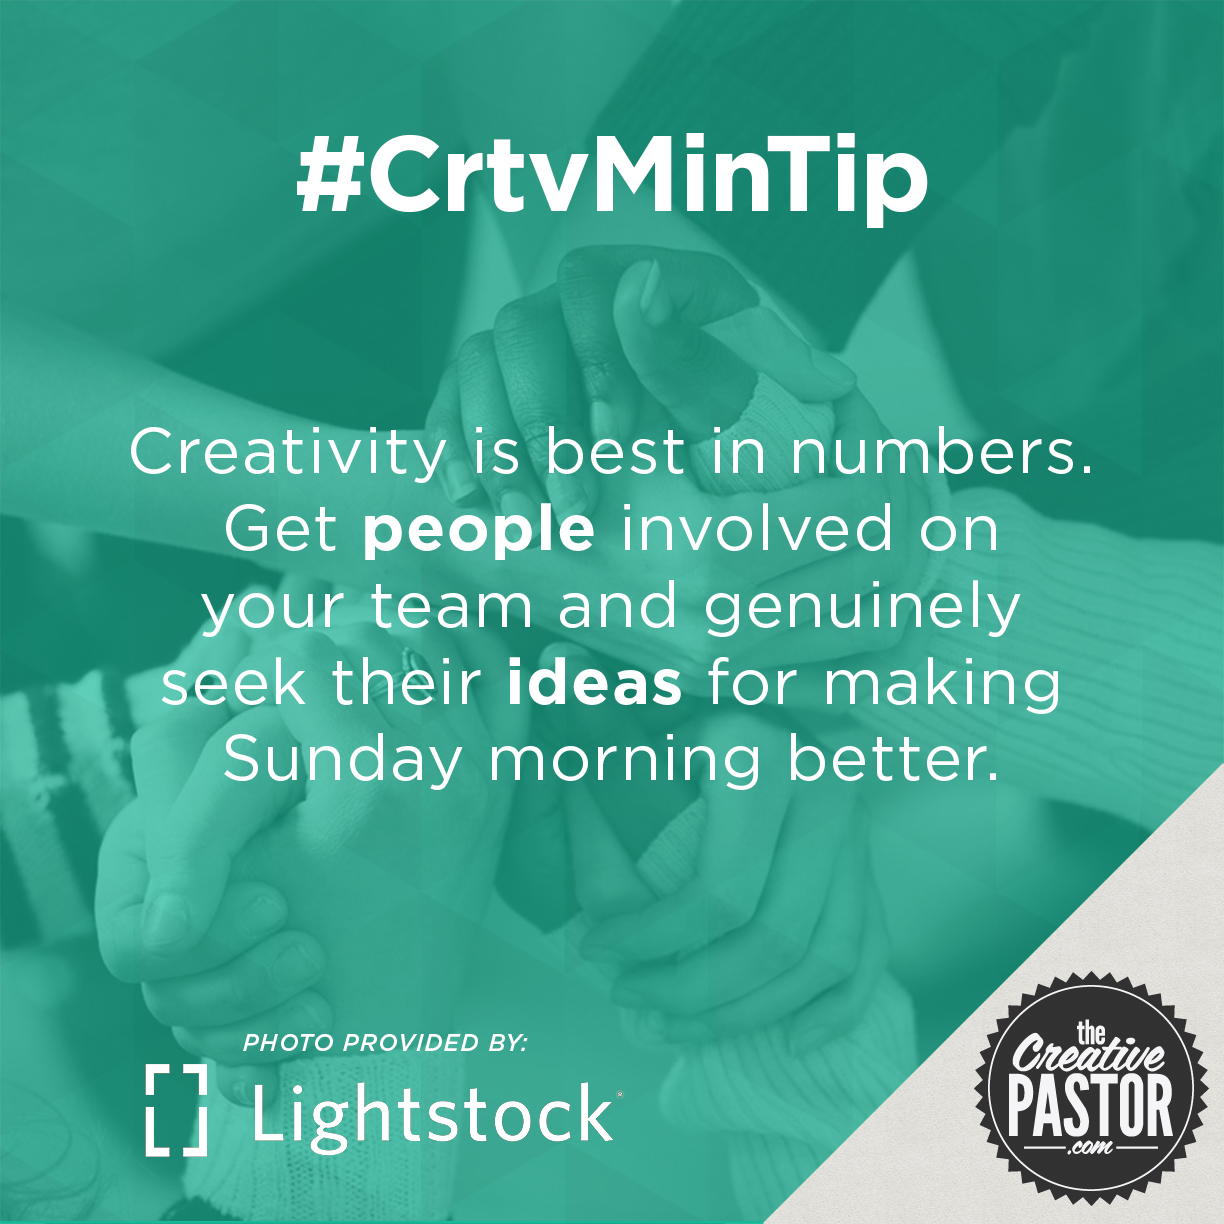 Creativity is best in numbers. Get people involved on your team and genuinely seek their ideas for making Sunday morning better.